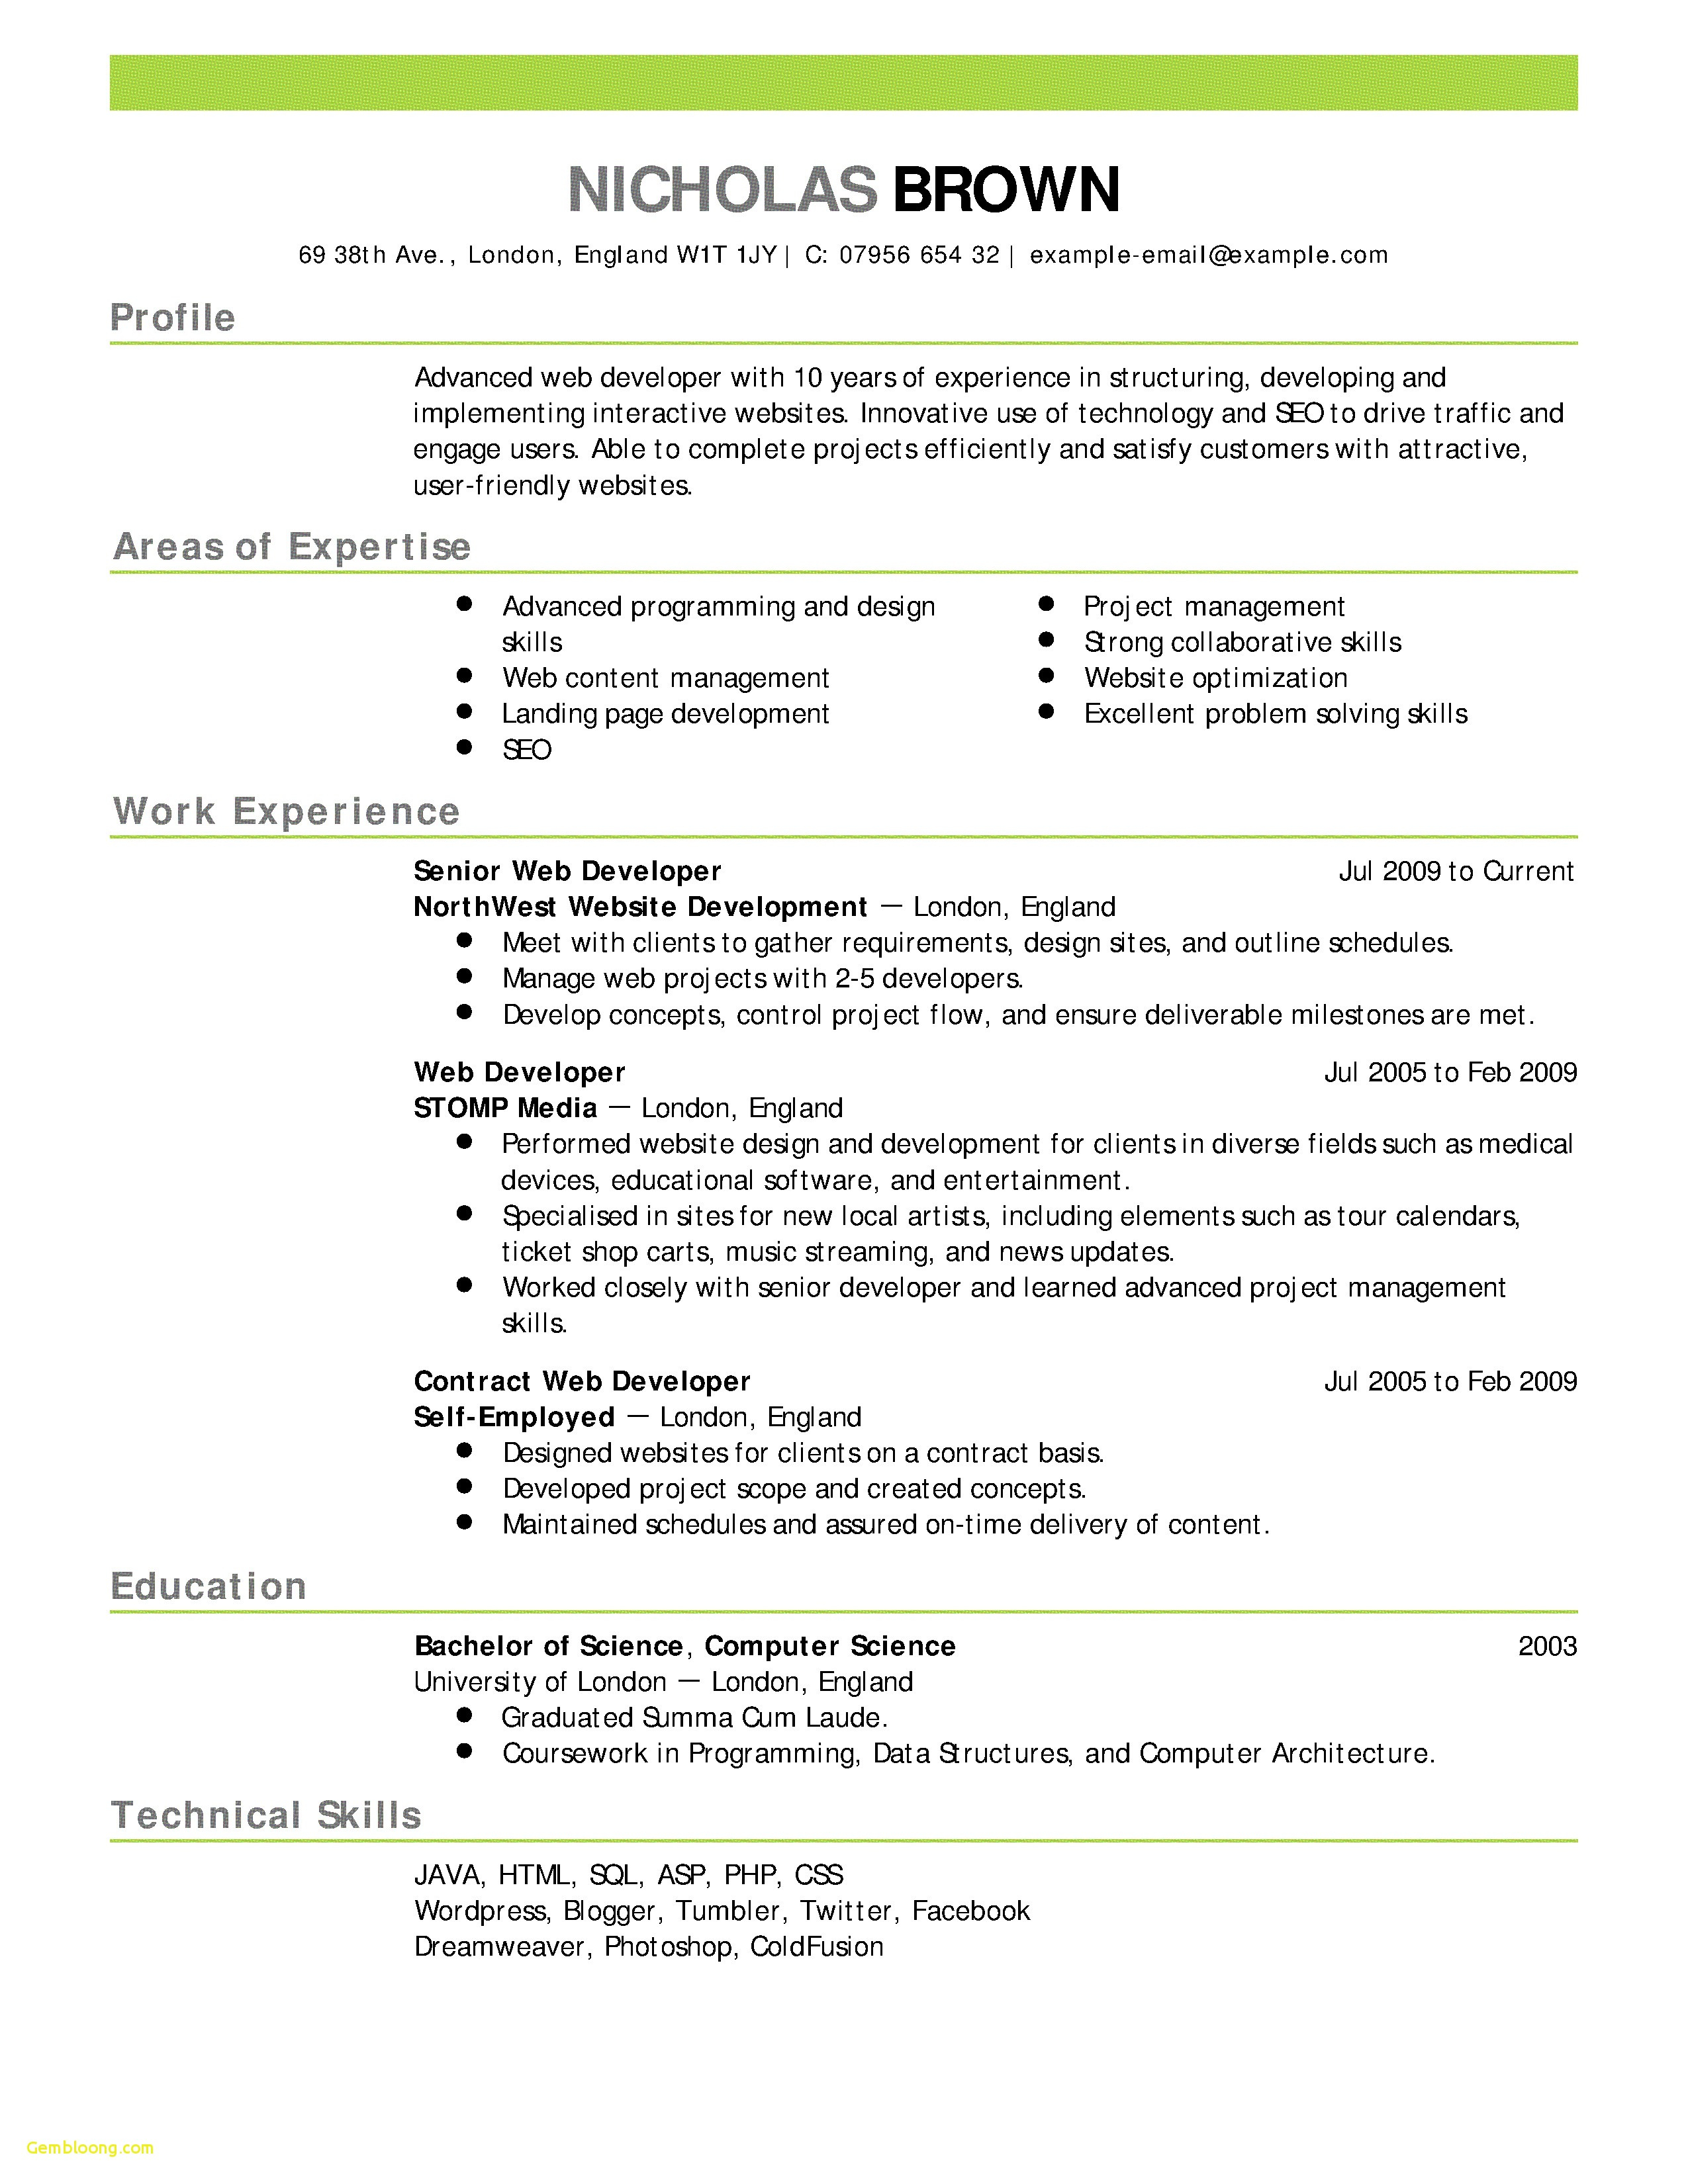 Free form Letter Template - Resume Cover Letter Template Free Download Myacereporter